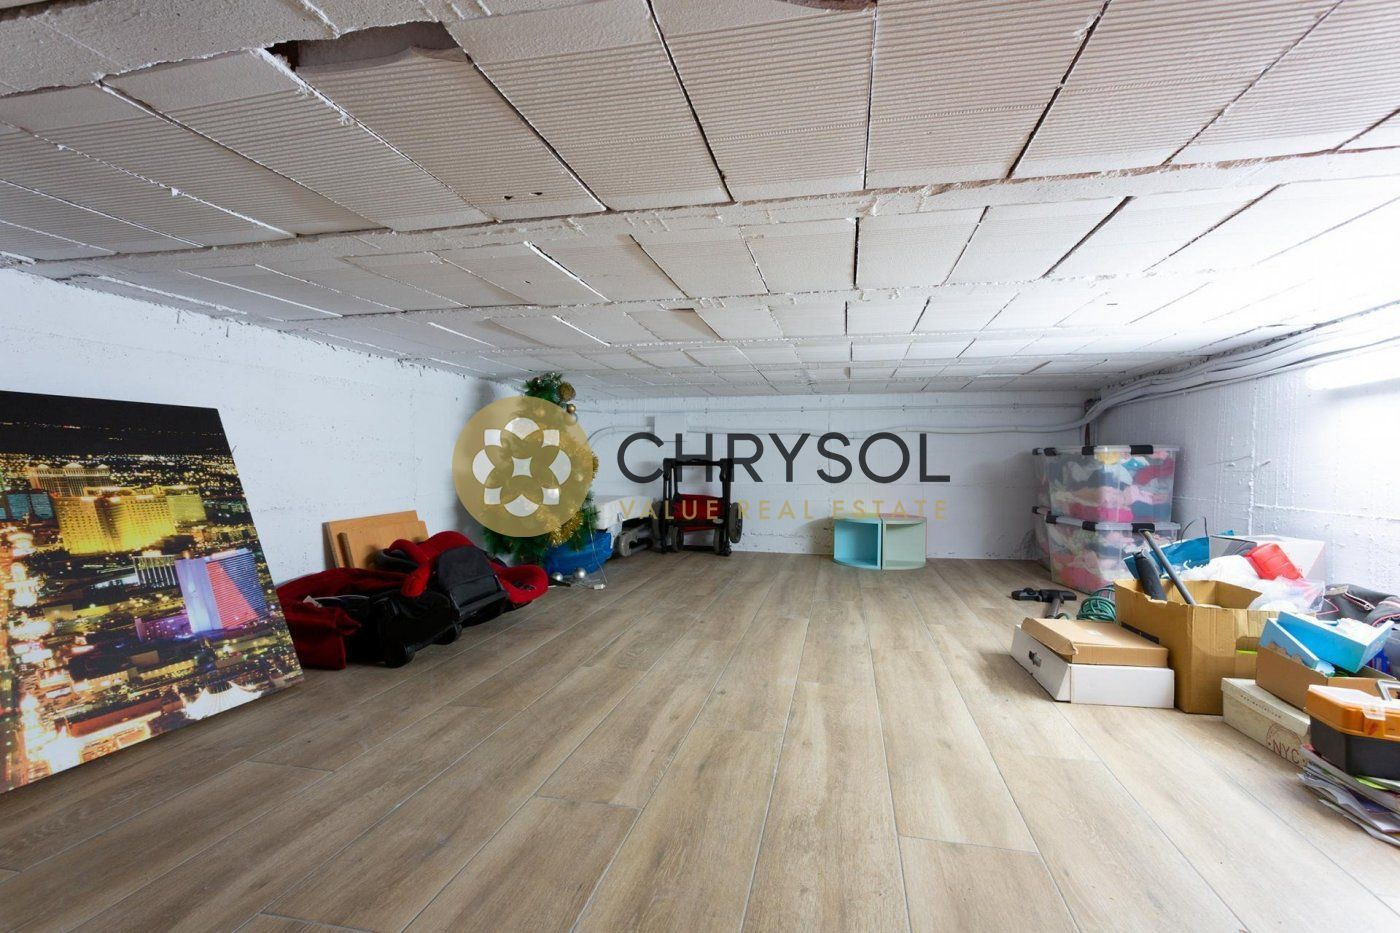 Photogallery - 53 - Chrysol Value